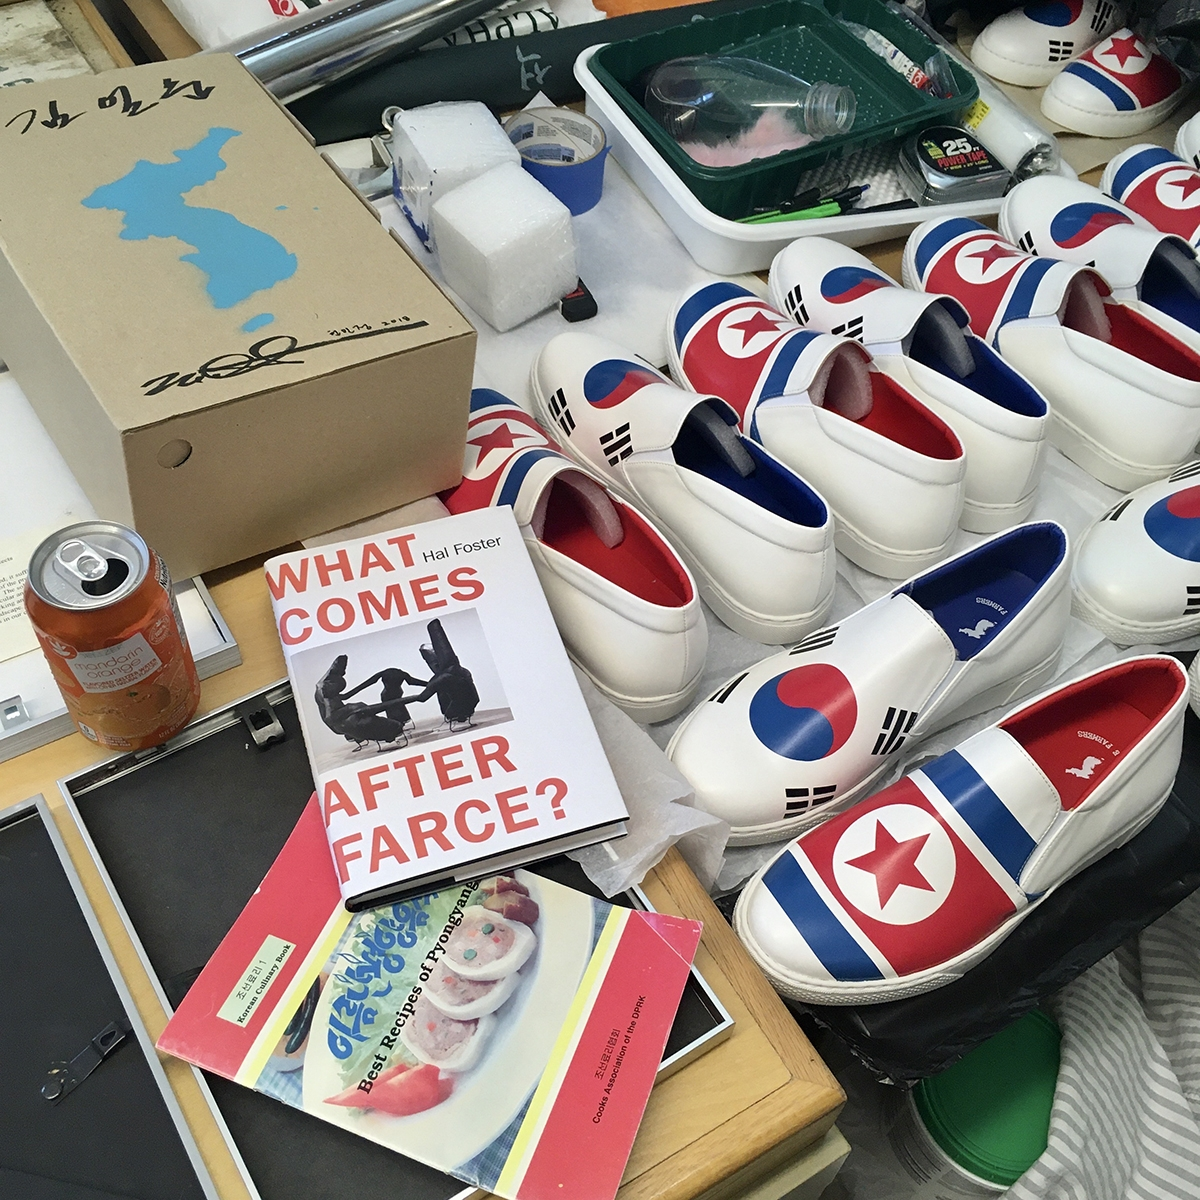 An orange aluminum can, a book by Hal Foster, a cookbook, and many pairs of white slip on shoes with the North and South Korean flags appear on a surface.